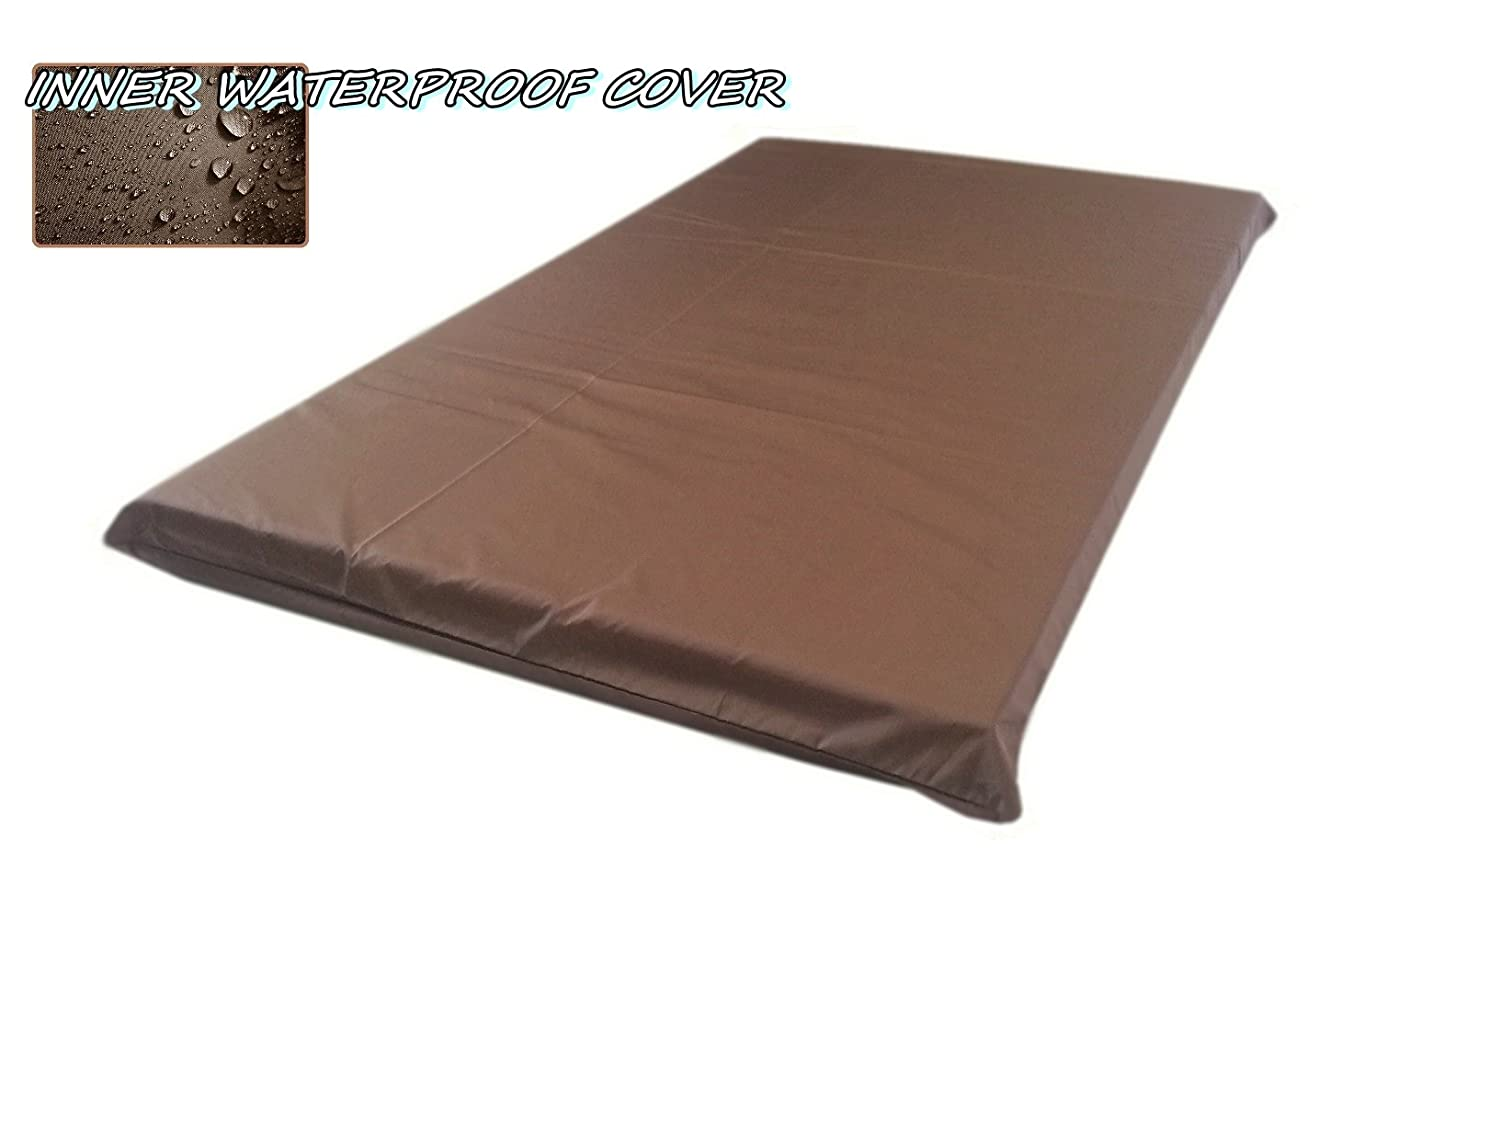 "2 Quantity of 45""x27""x3"" / 48""x29"" Large size Brown Full Waterproof Dog Bed Liner - Internal Cover Case"